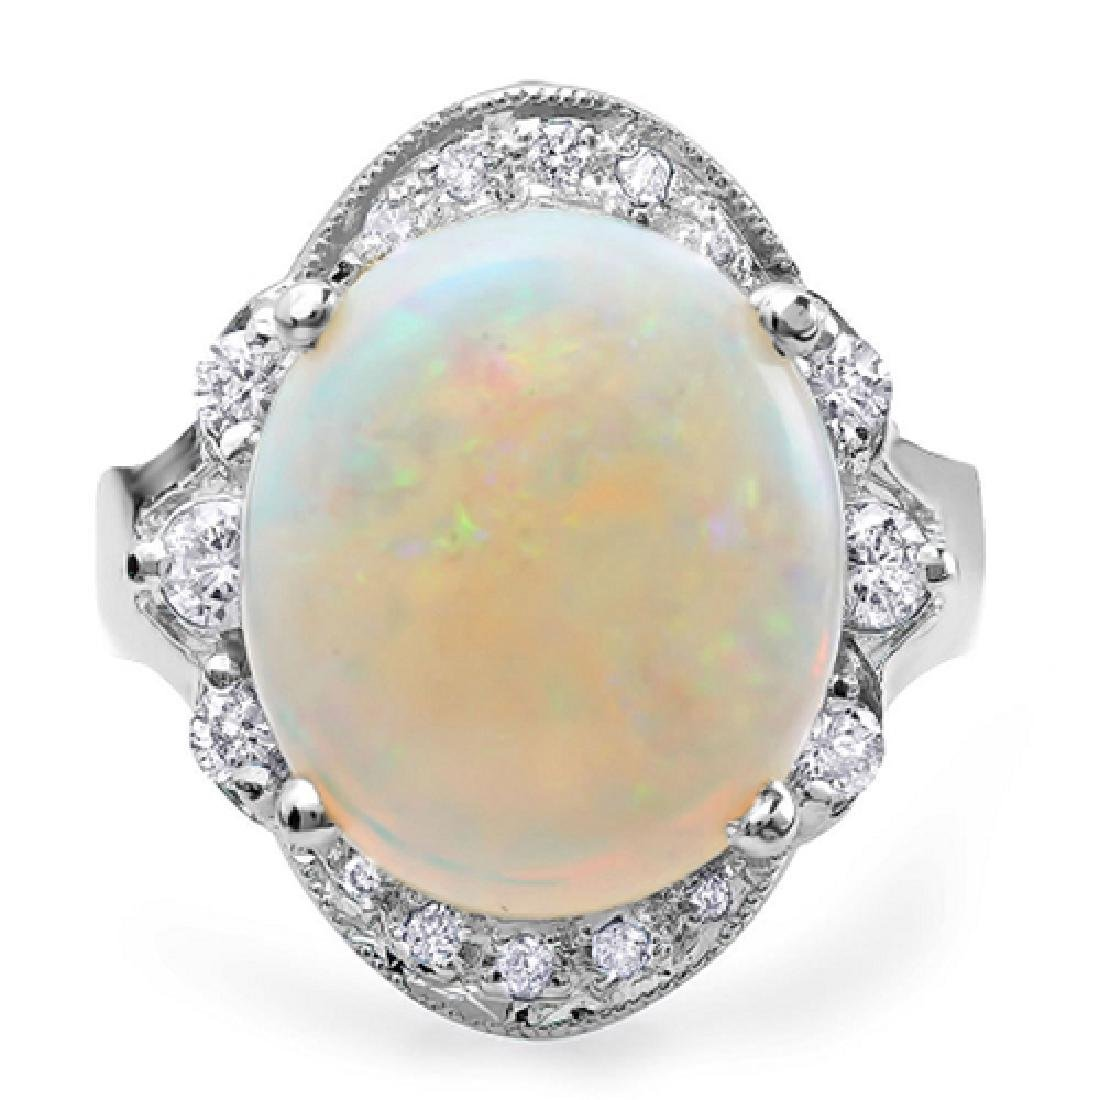 5.43 Carat Natural Opal 18K Solid White Gold Diamond